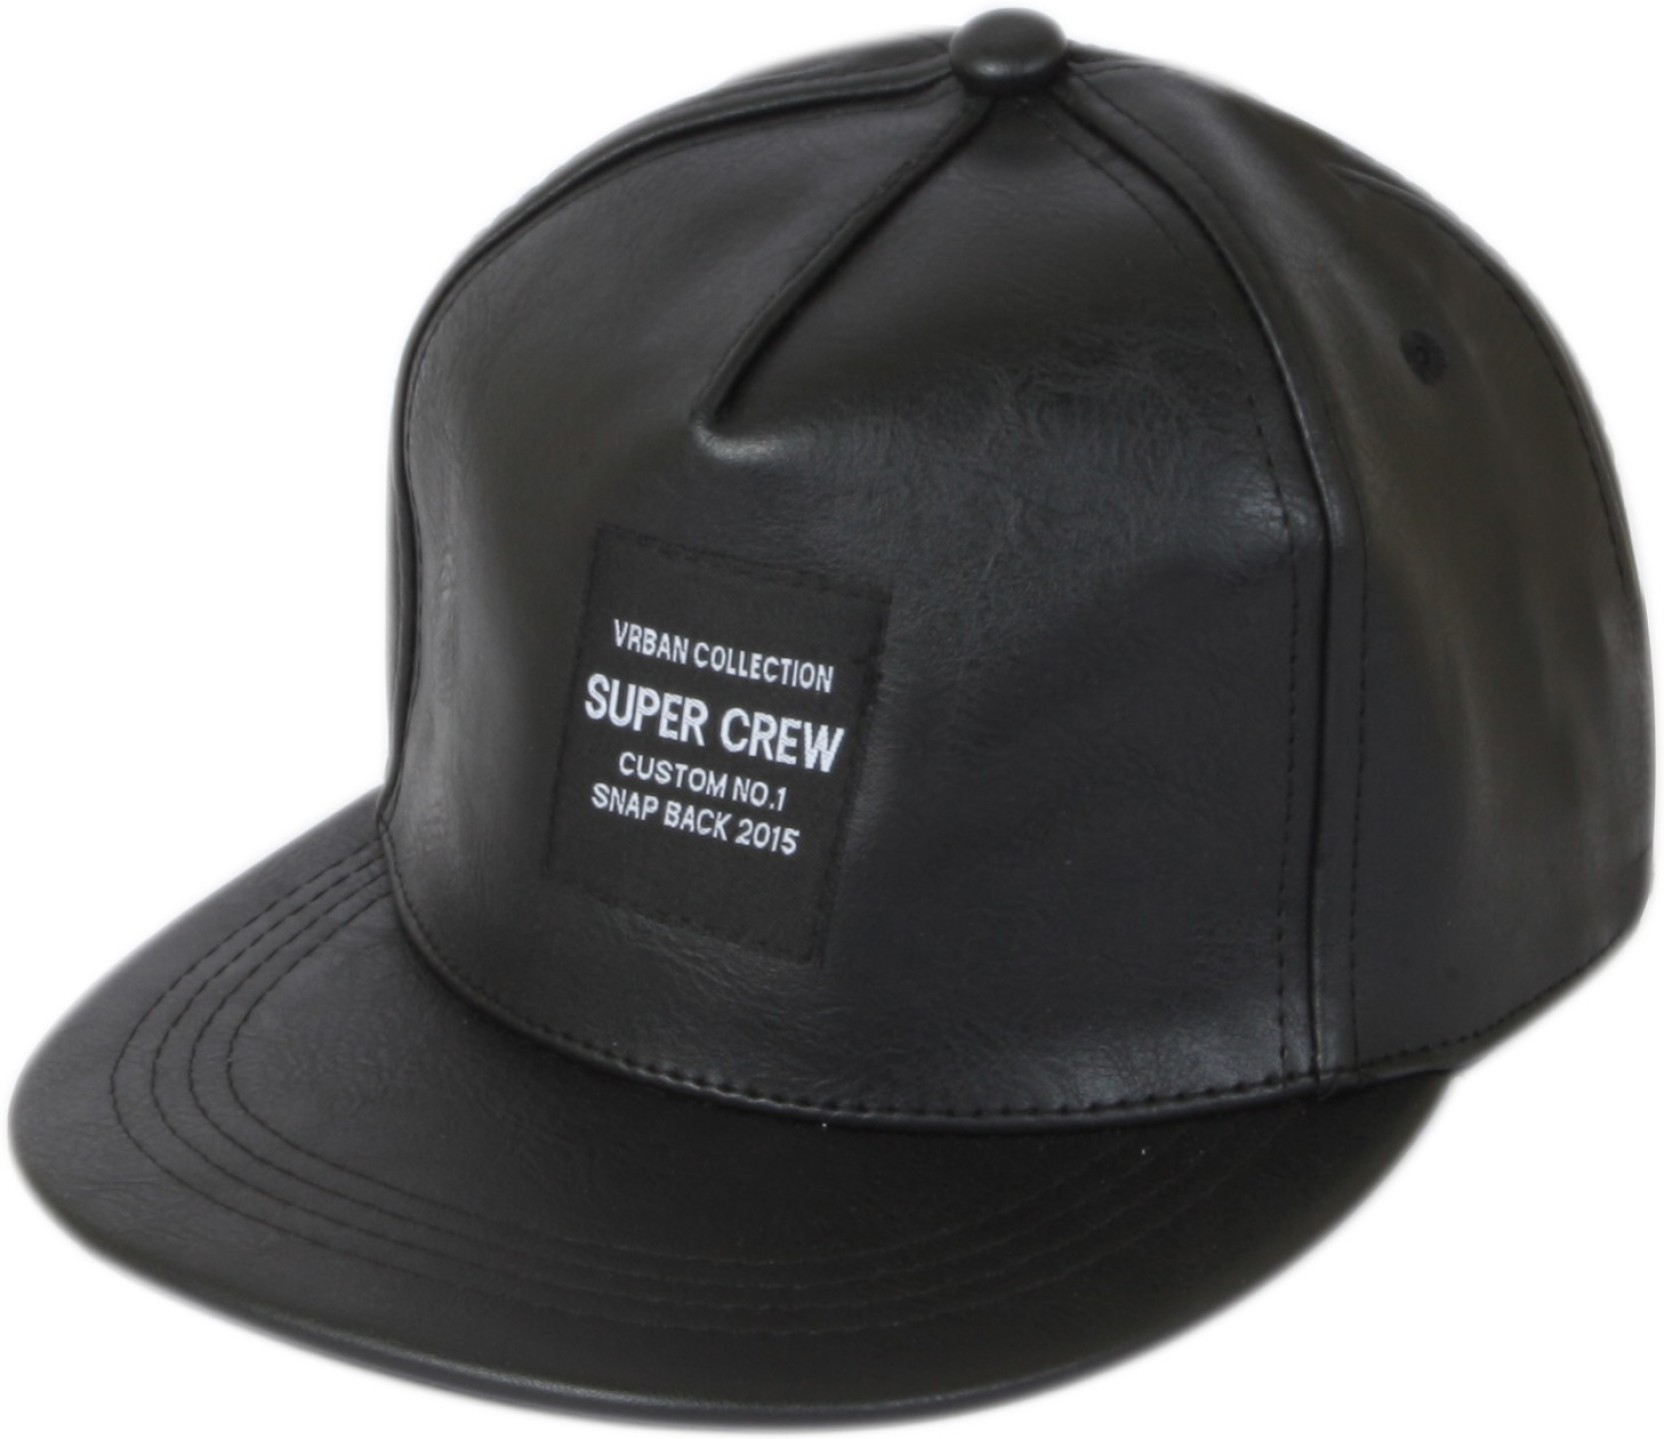 ccc66d0375e ILU Black Caps for men and women